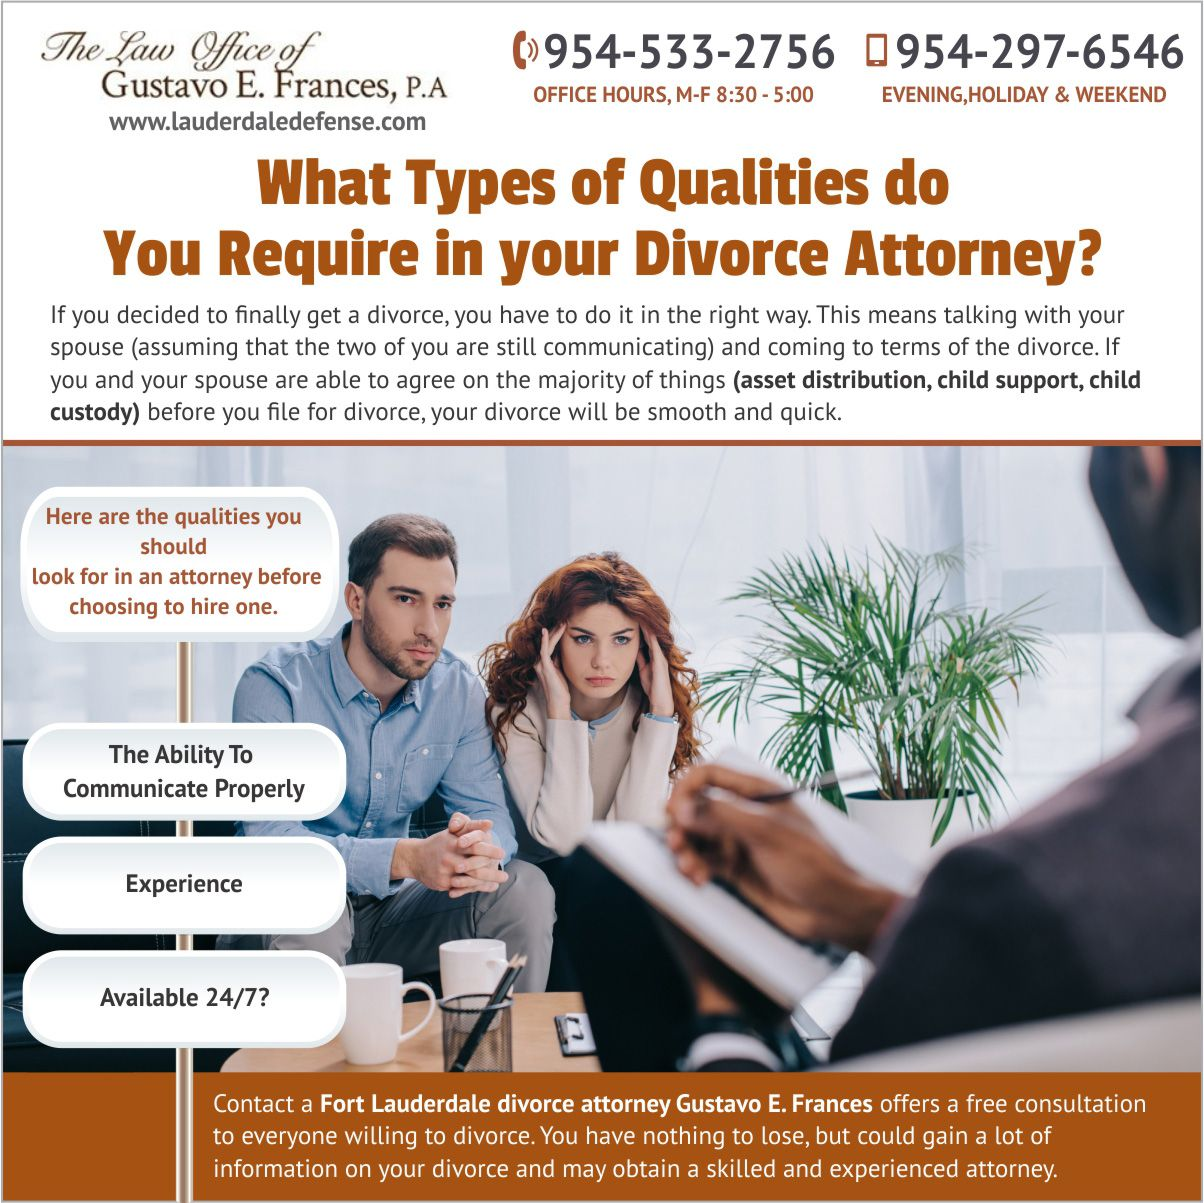 99fab45e1fbb0e3dfce442432ee98d5c - How To Get Divorced In Pa Without A Lawyer